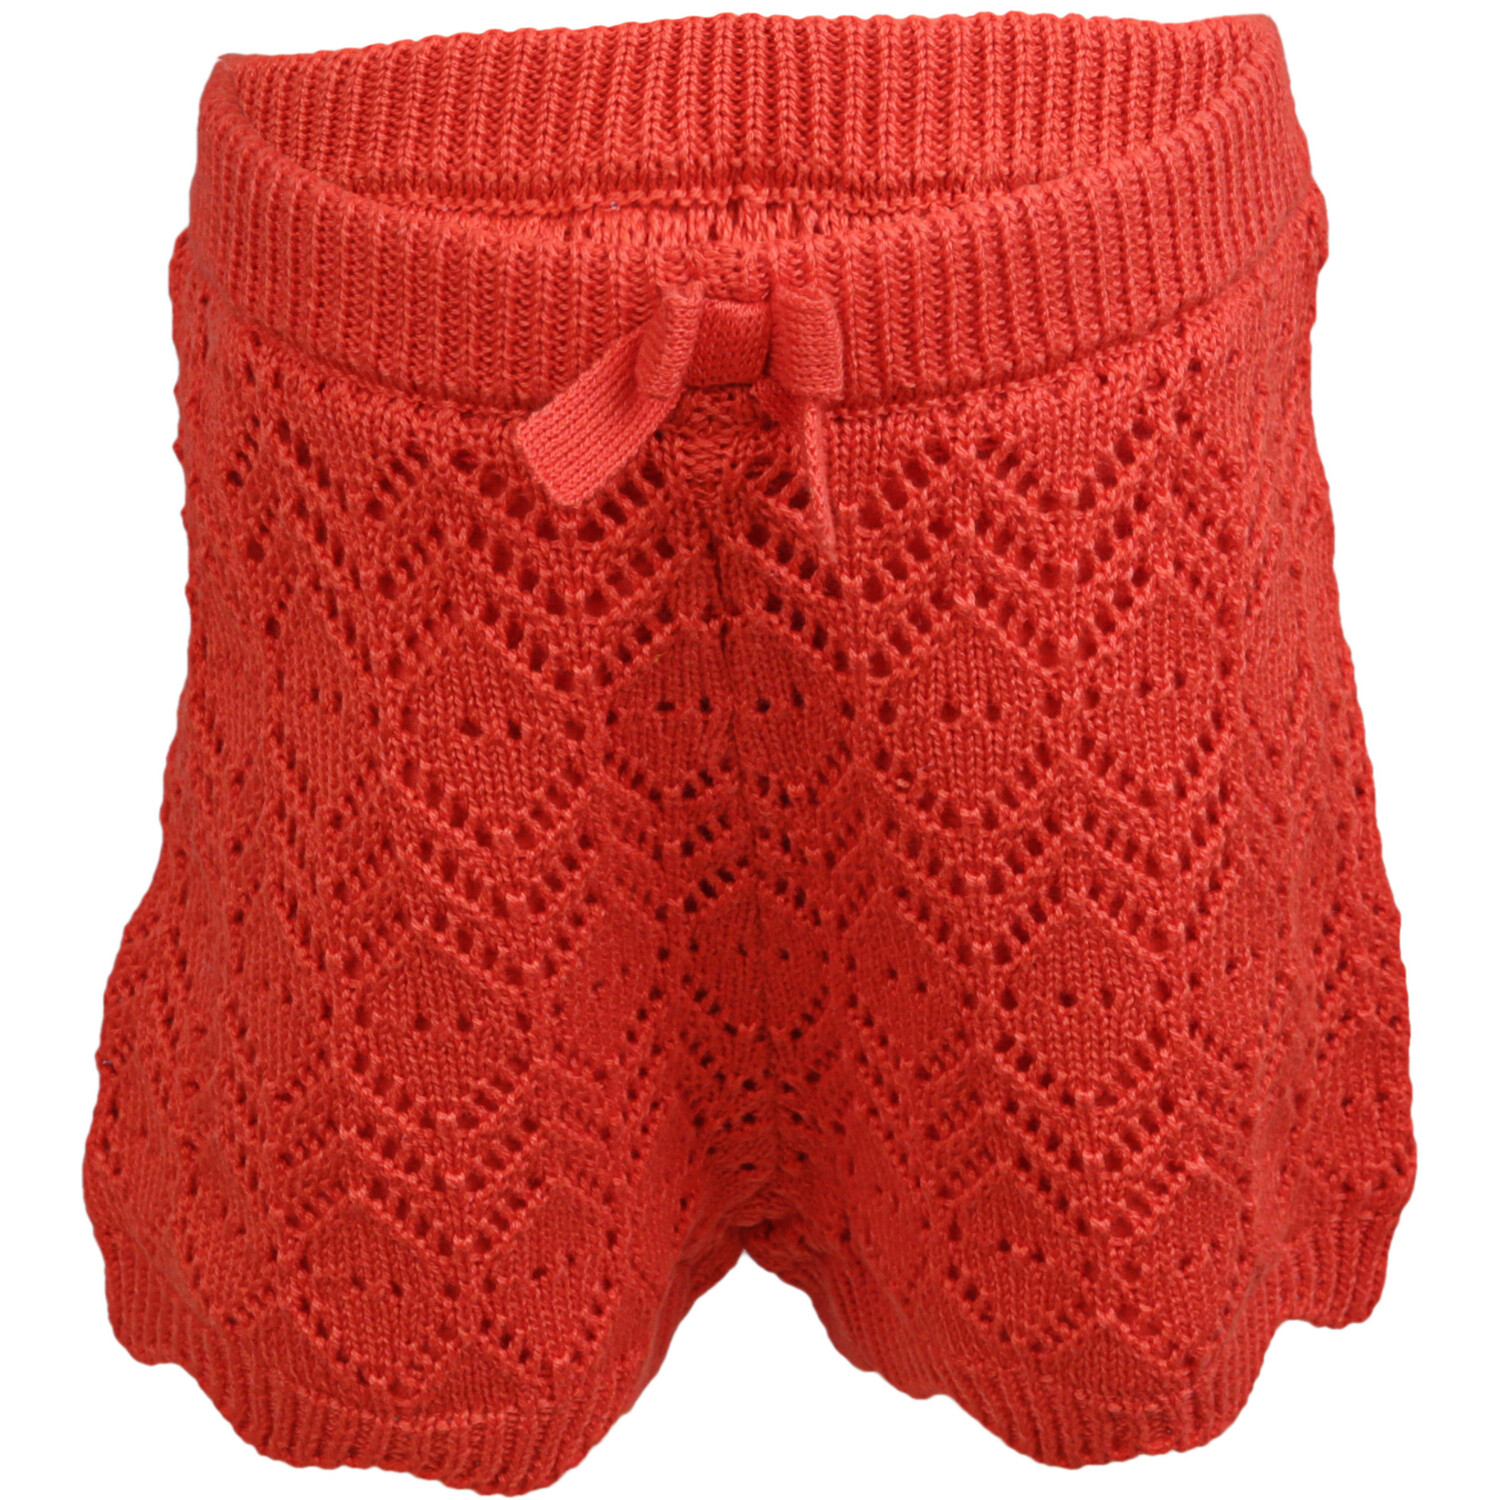 Janie And Jack Girl's Tomato Crochet Shorts Short - 18-24 Months